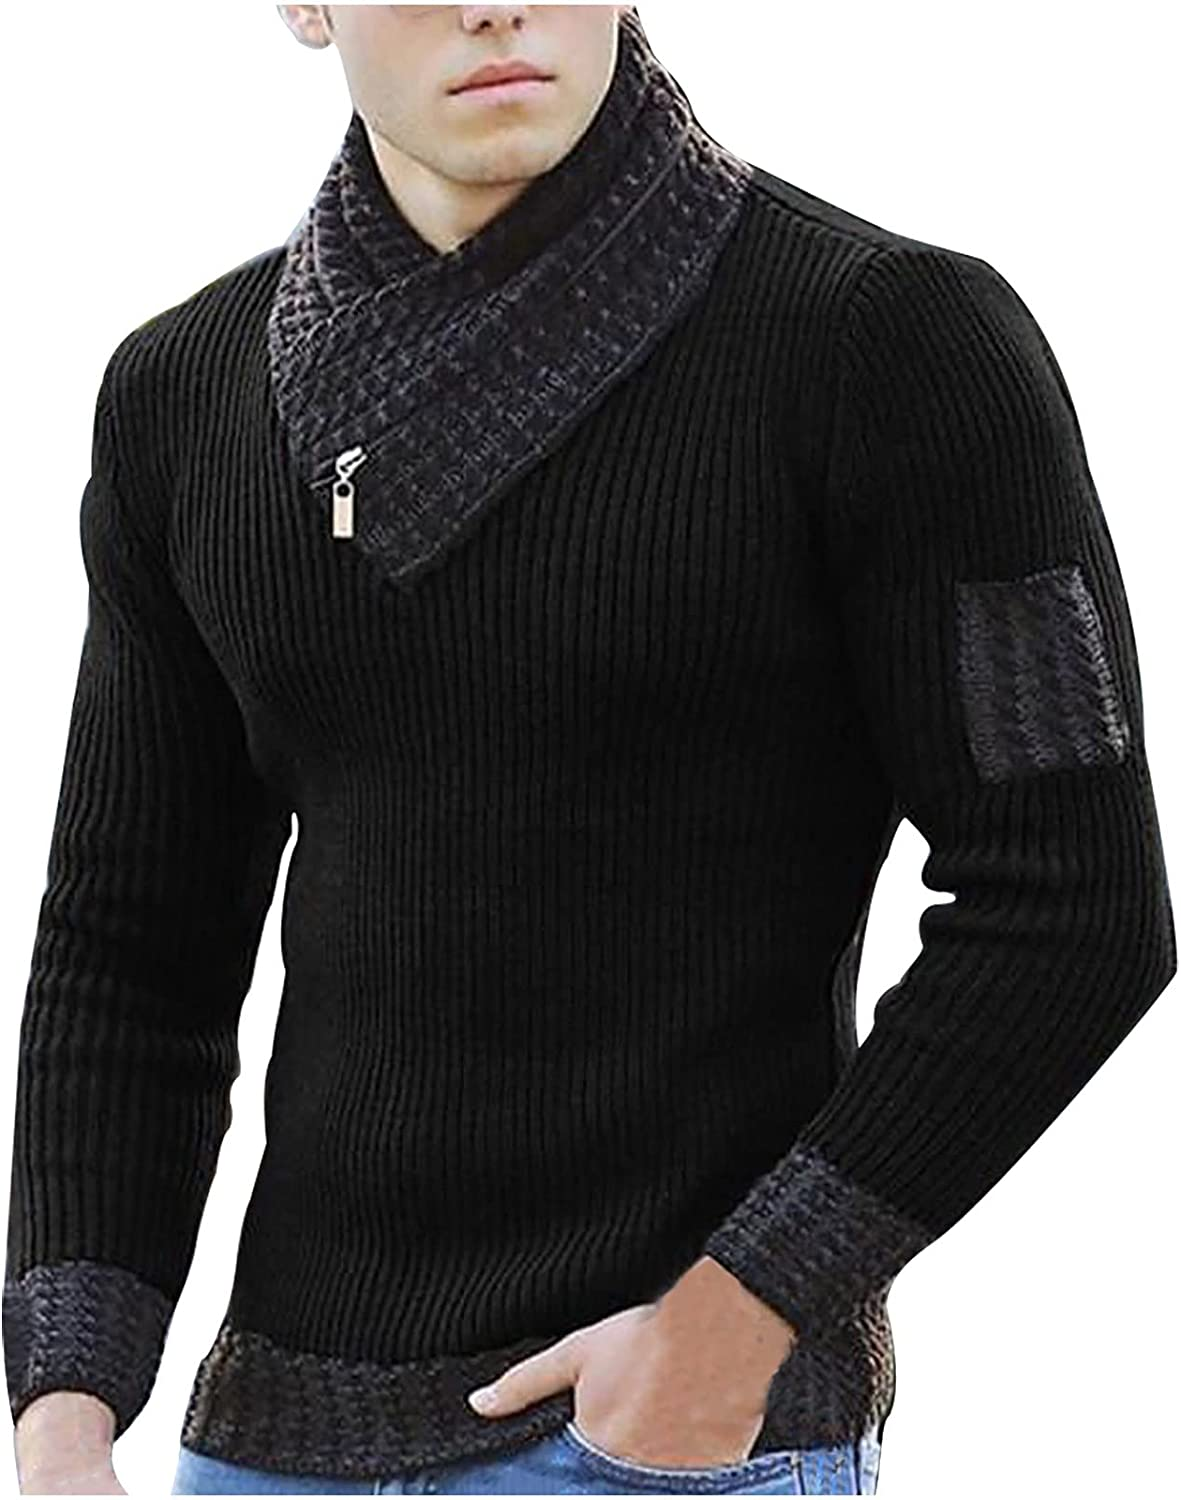 Men Scarf Neck Sweater Knitted Pullover Fashion Casual Long Sleeve Tops Slim Fit Soft Strench Stitching Sweater